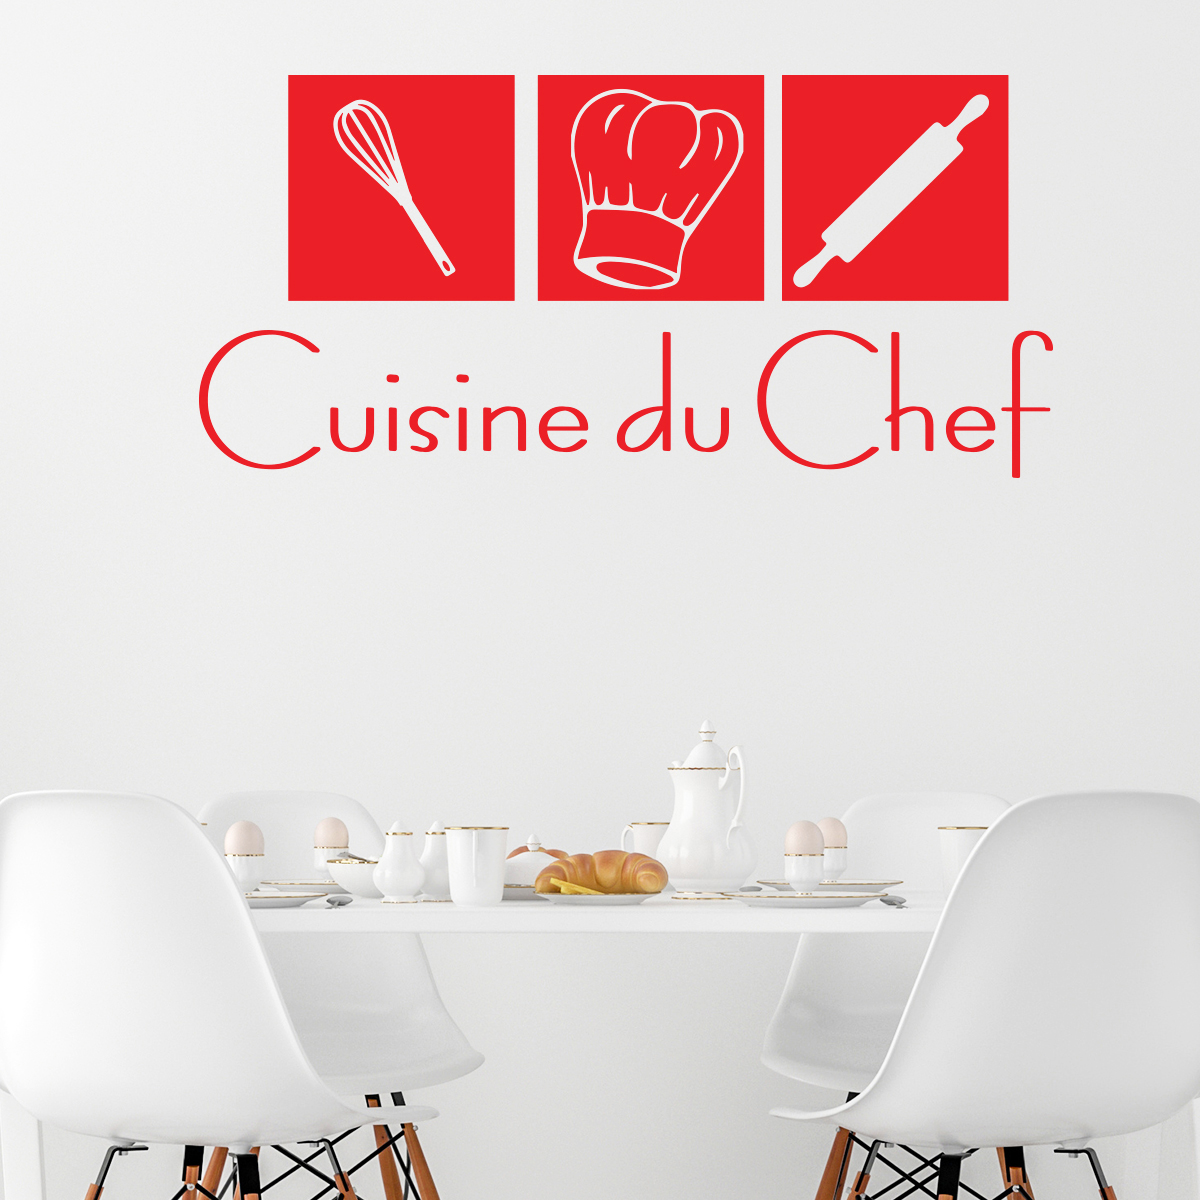 stickers muraux pour la cuisine sticker cuisine du chef ambiance. Black Bedroom Furniture Sets. Home Design Ideas